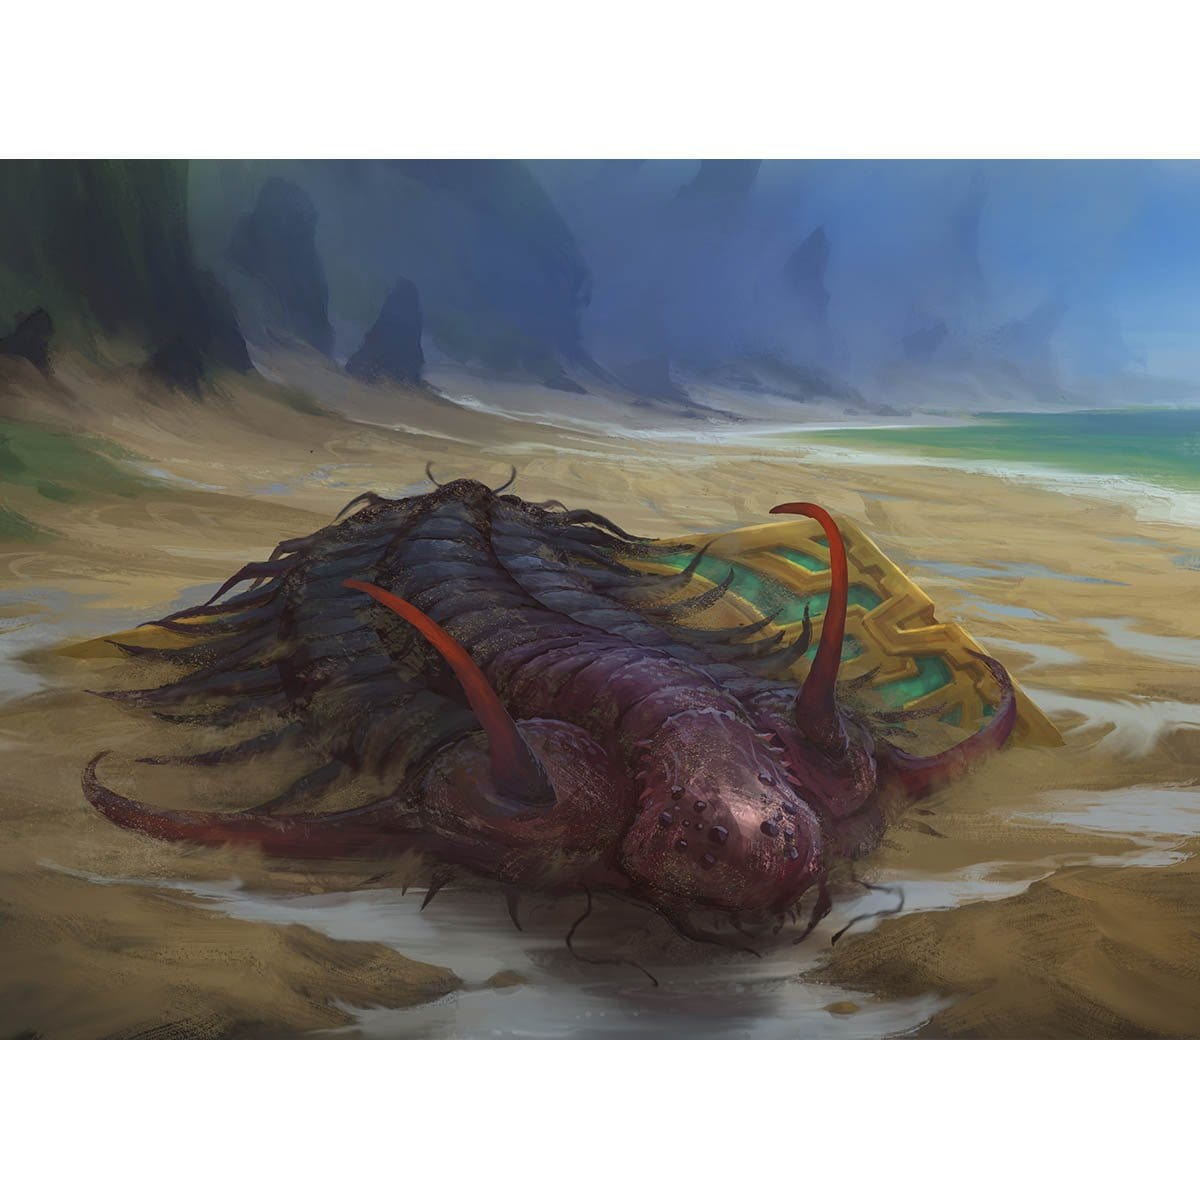 Shore Keeper Print - Print - Original Magic Art - Accessories for Magic the Gathering and other card games